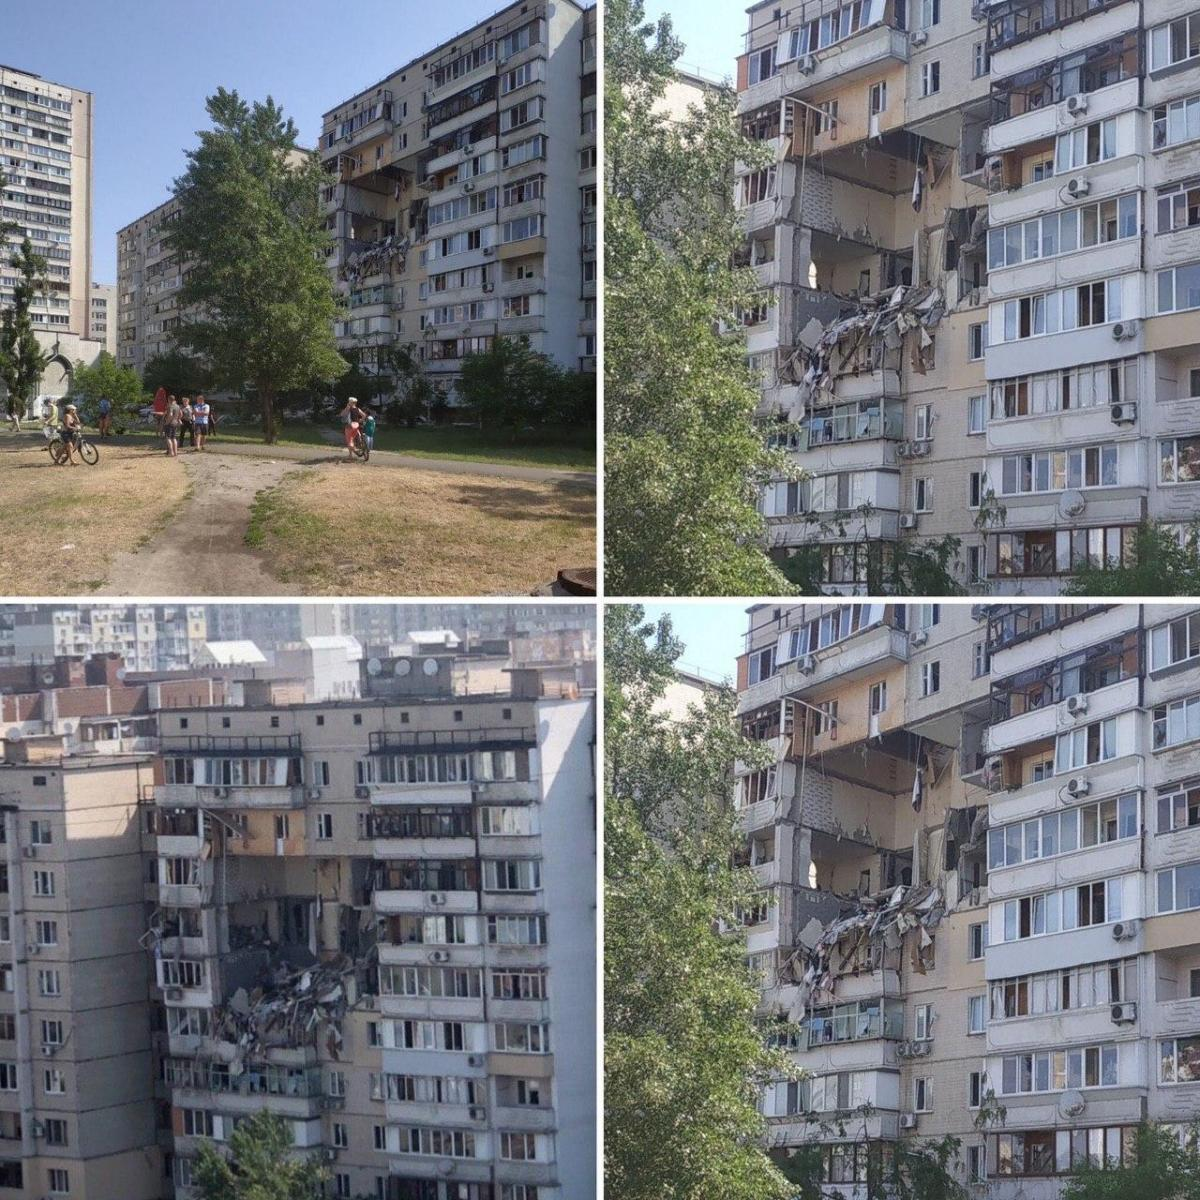 The building damaged by an explosion / Photo from Kyiv_Now on Telegram